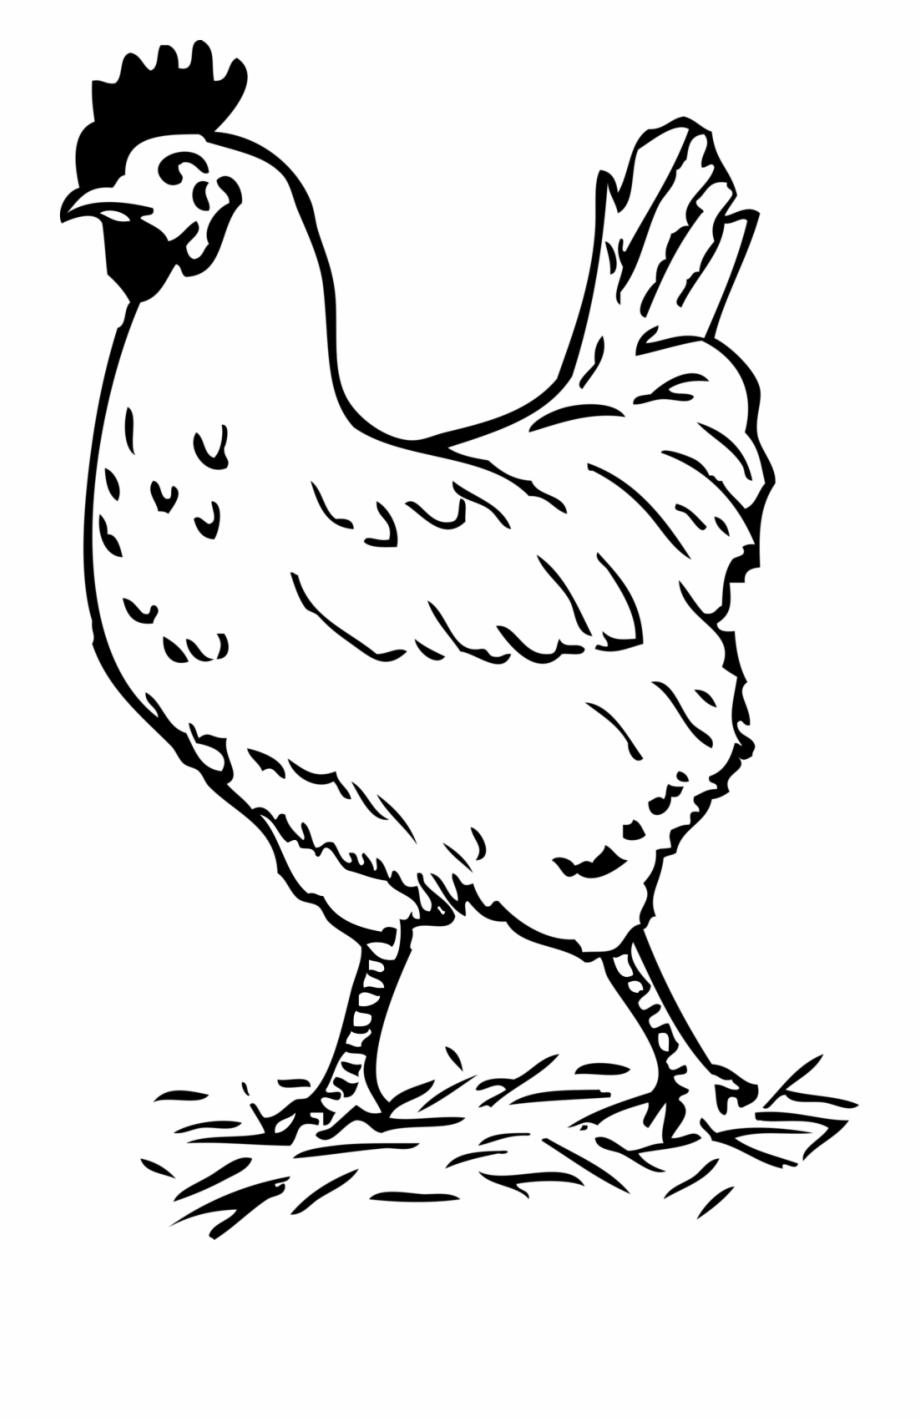 Free Fried Chicken Clipart Black And White, Download Free.